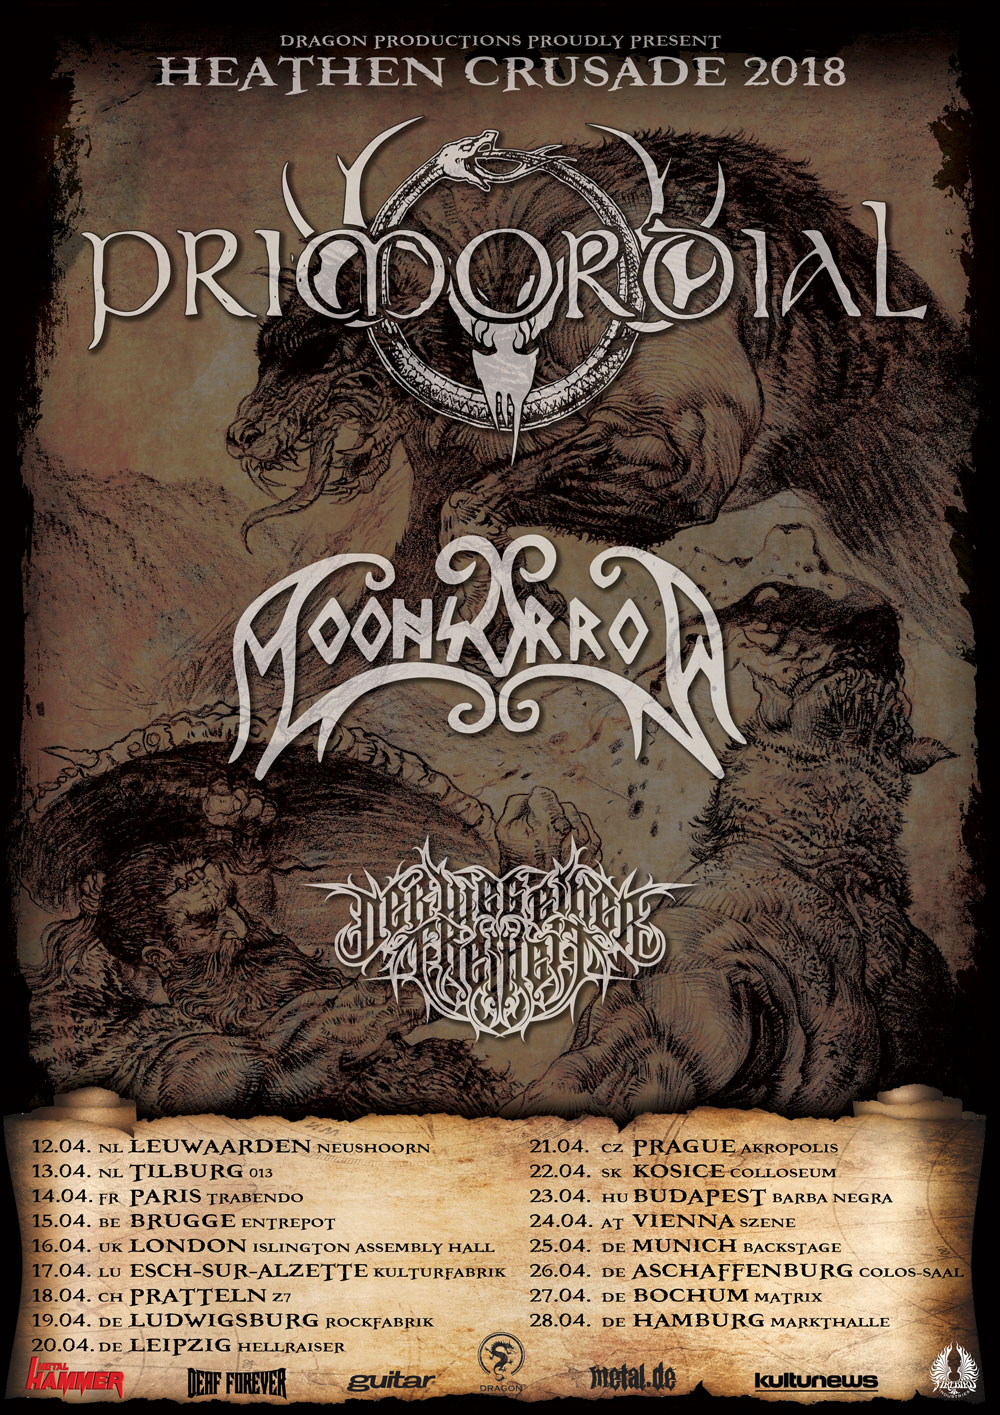 Primordial & Moonsorrow - Heathen Crusade 2018 Tourposter